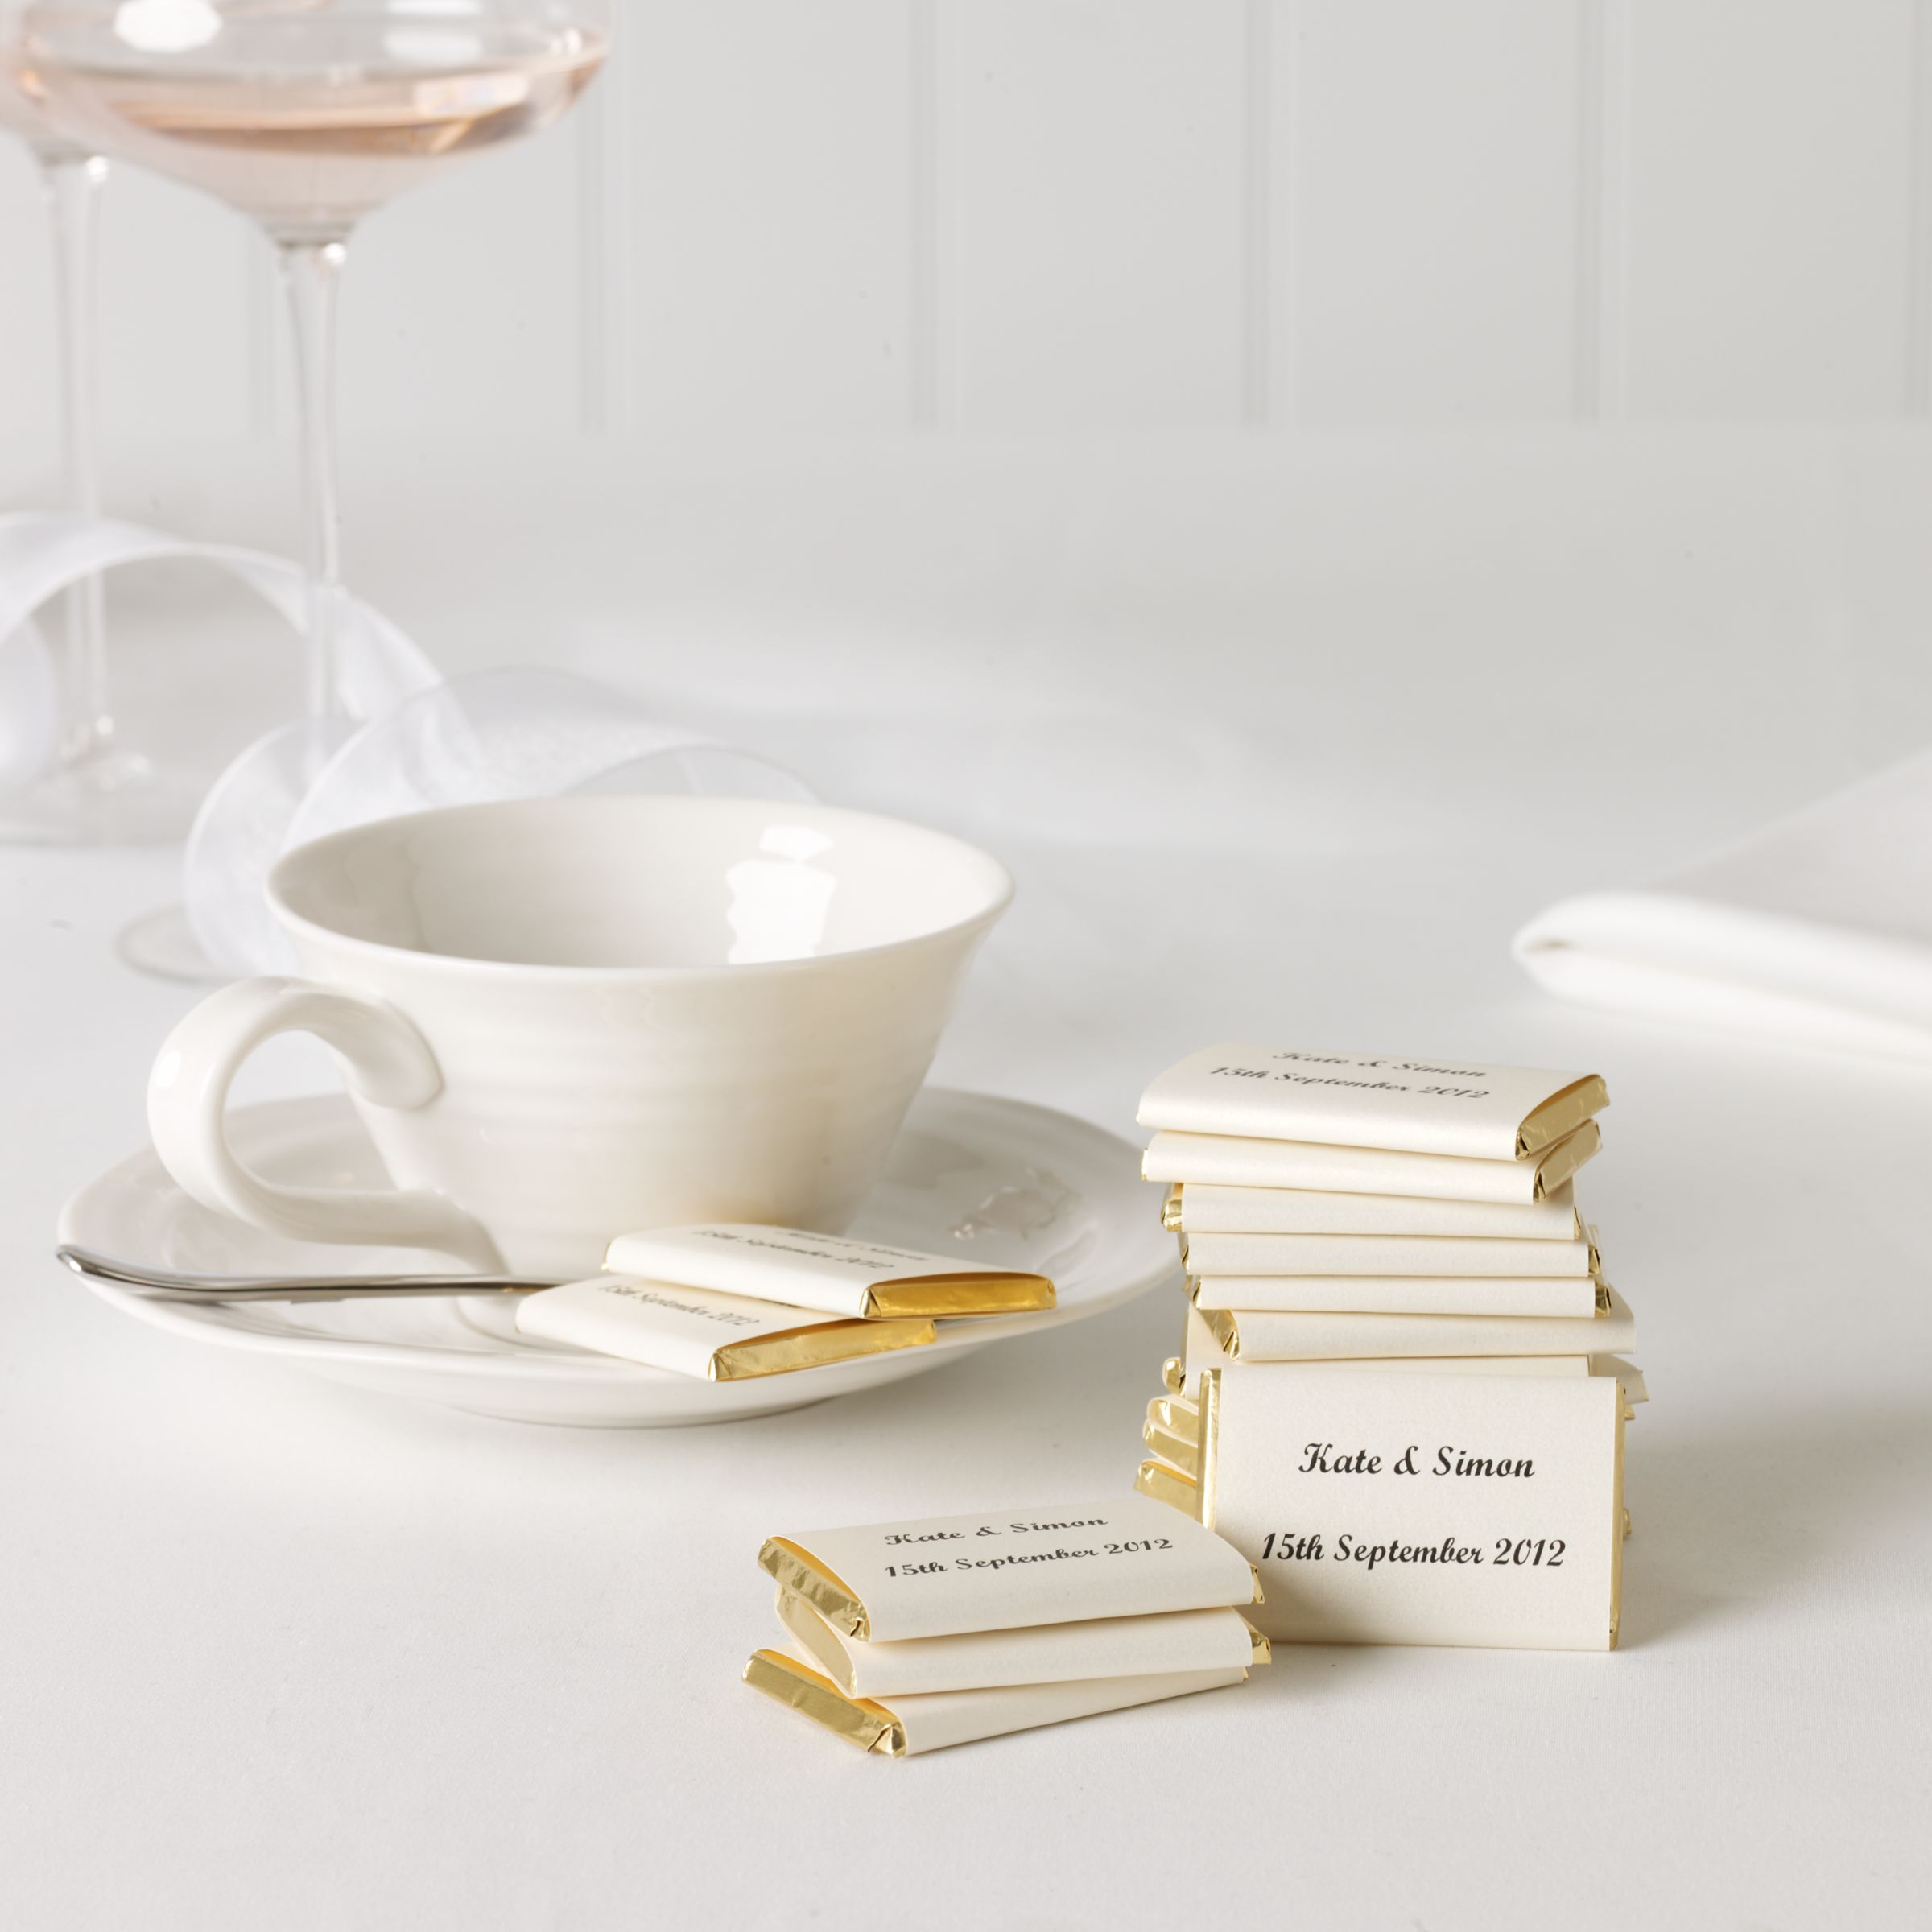 Fine Confectionery Company Personalised Nepolitan Foiled Milk Chocolates, Gold, Bag of 50, 500g